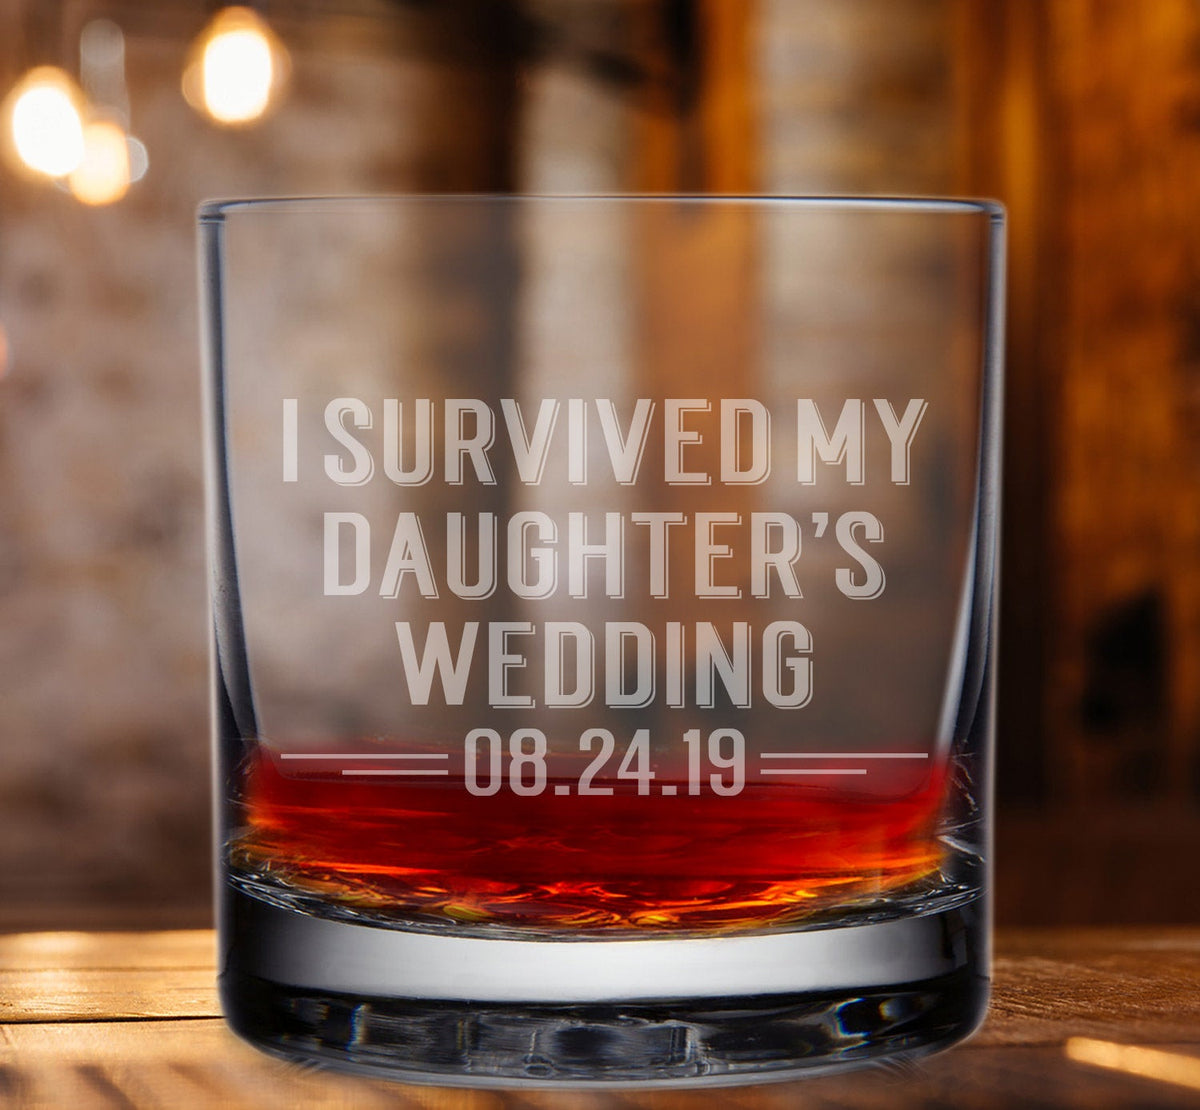 I Survived My Granddaughters Wedding-Whiskey Glasses + Wine-Maddie & Co.